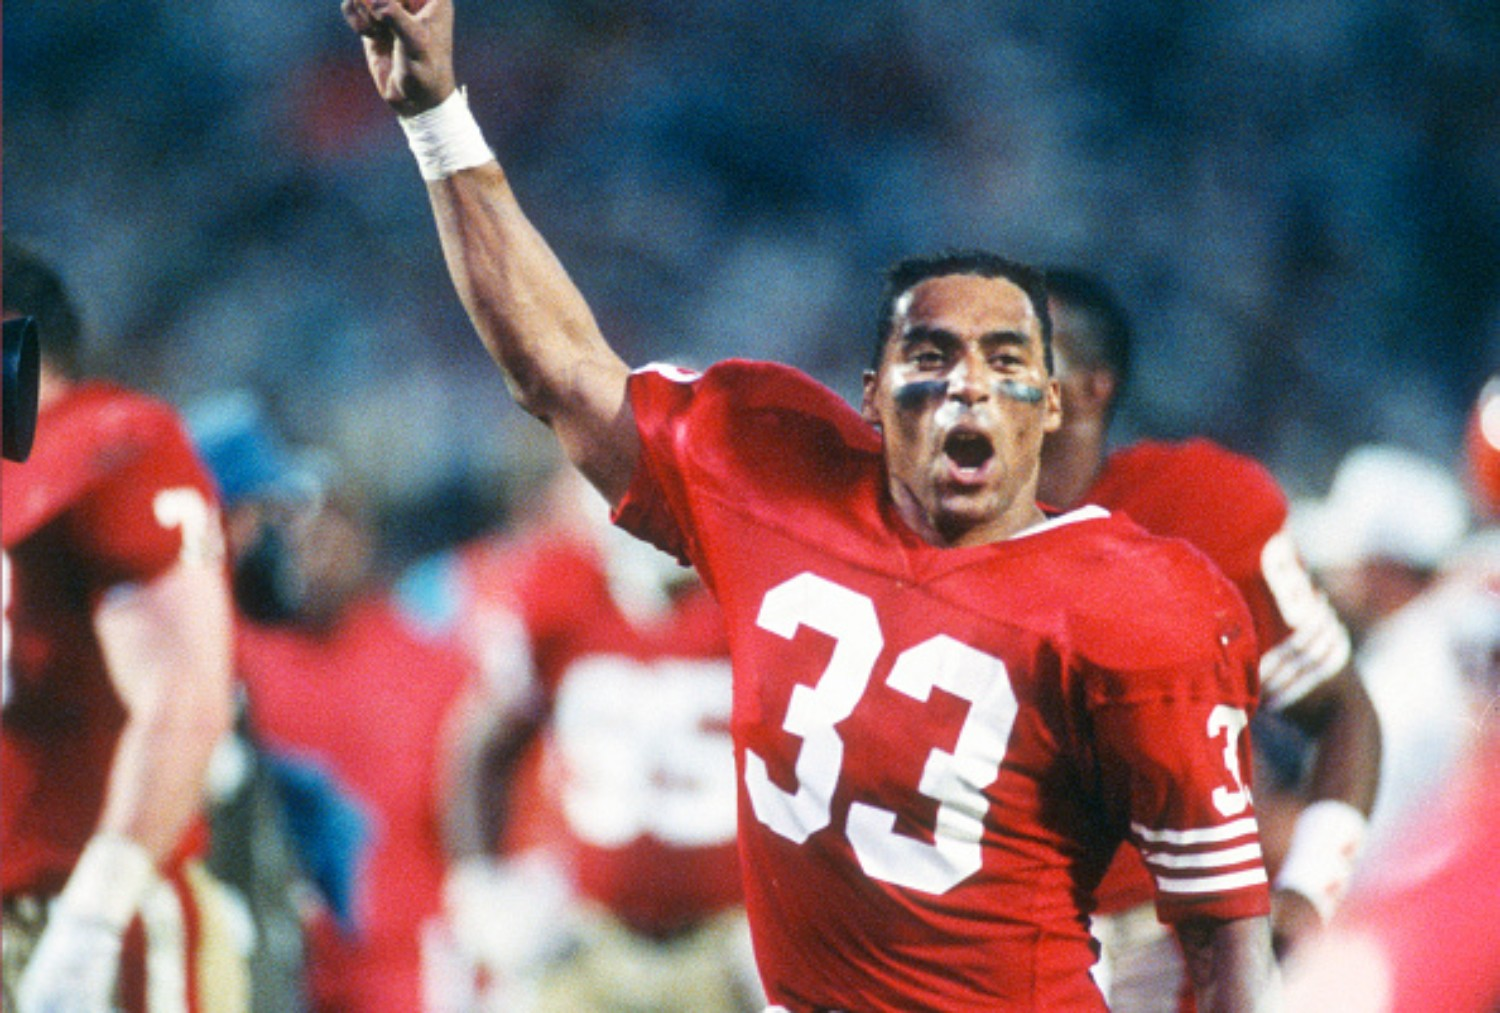 Roger Craig had a successful NFL career as a running back